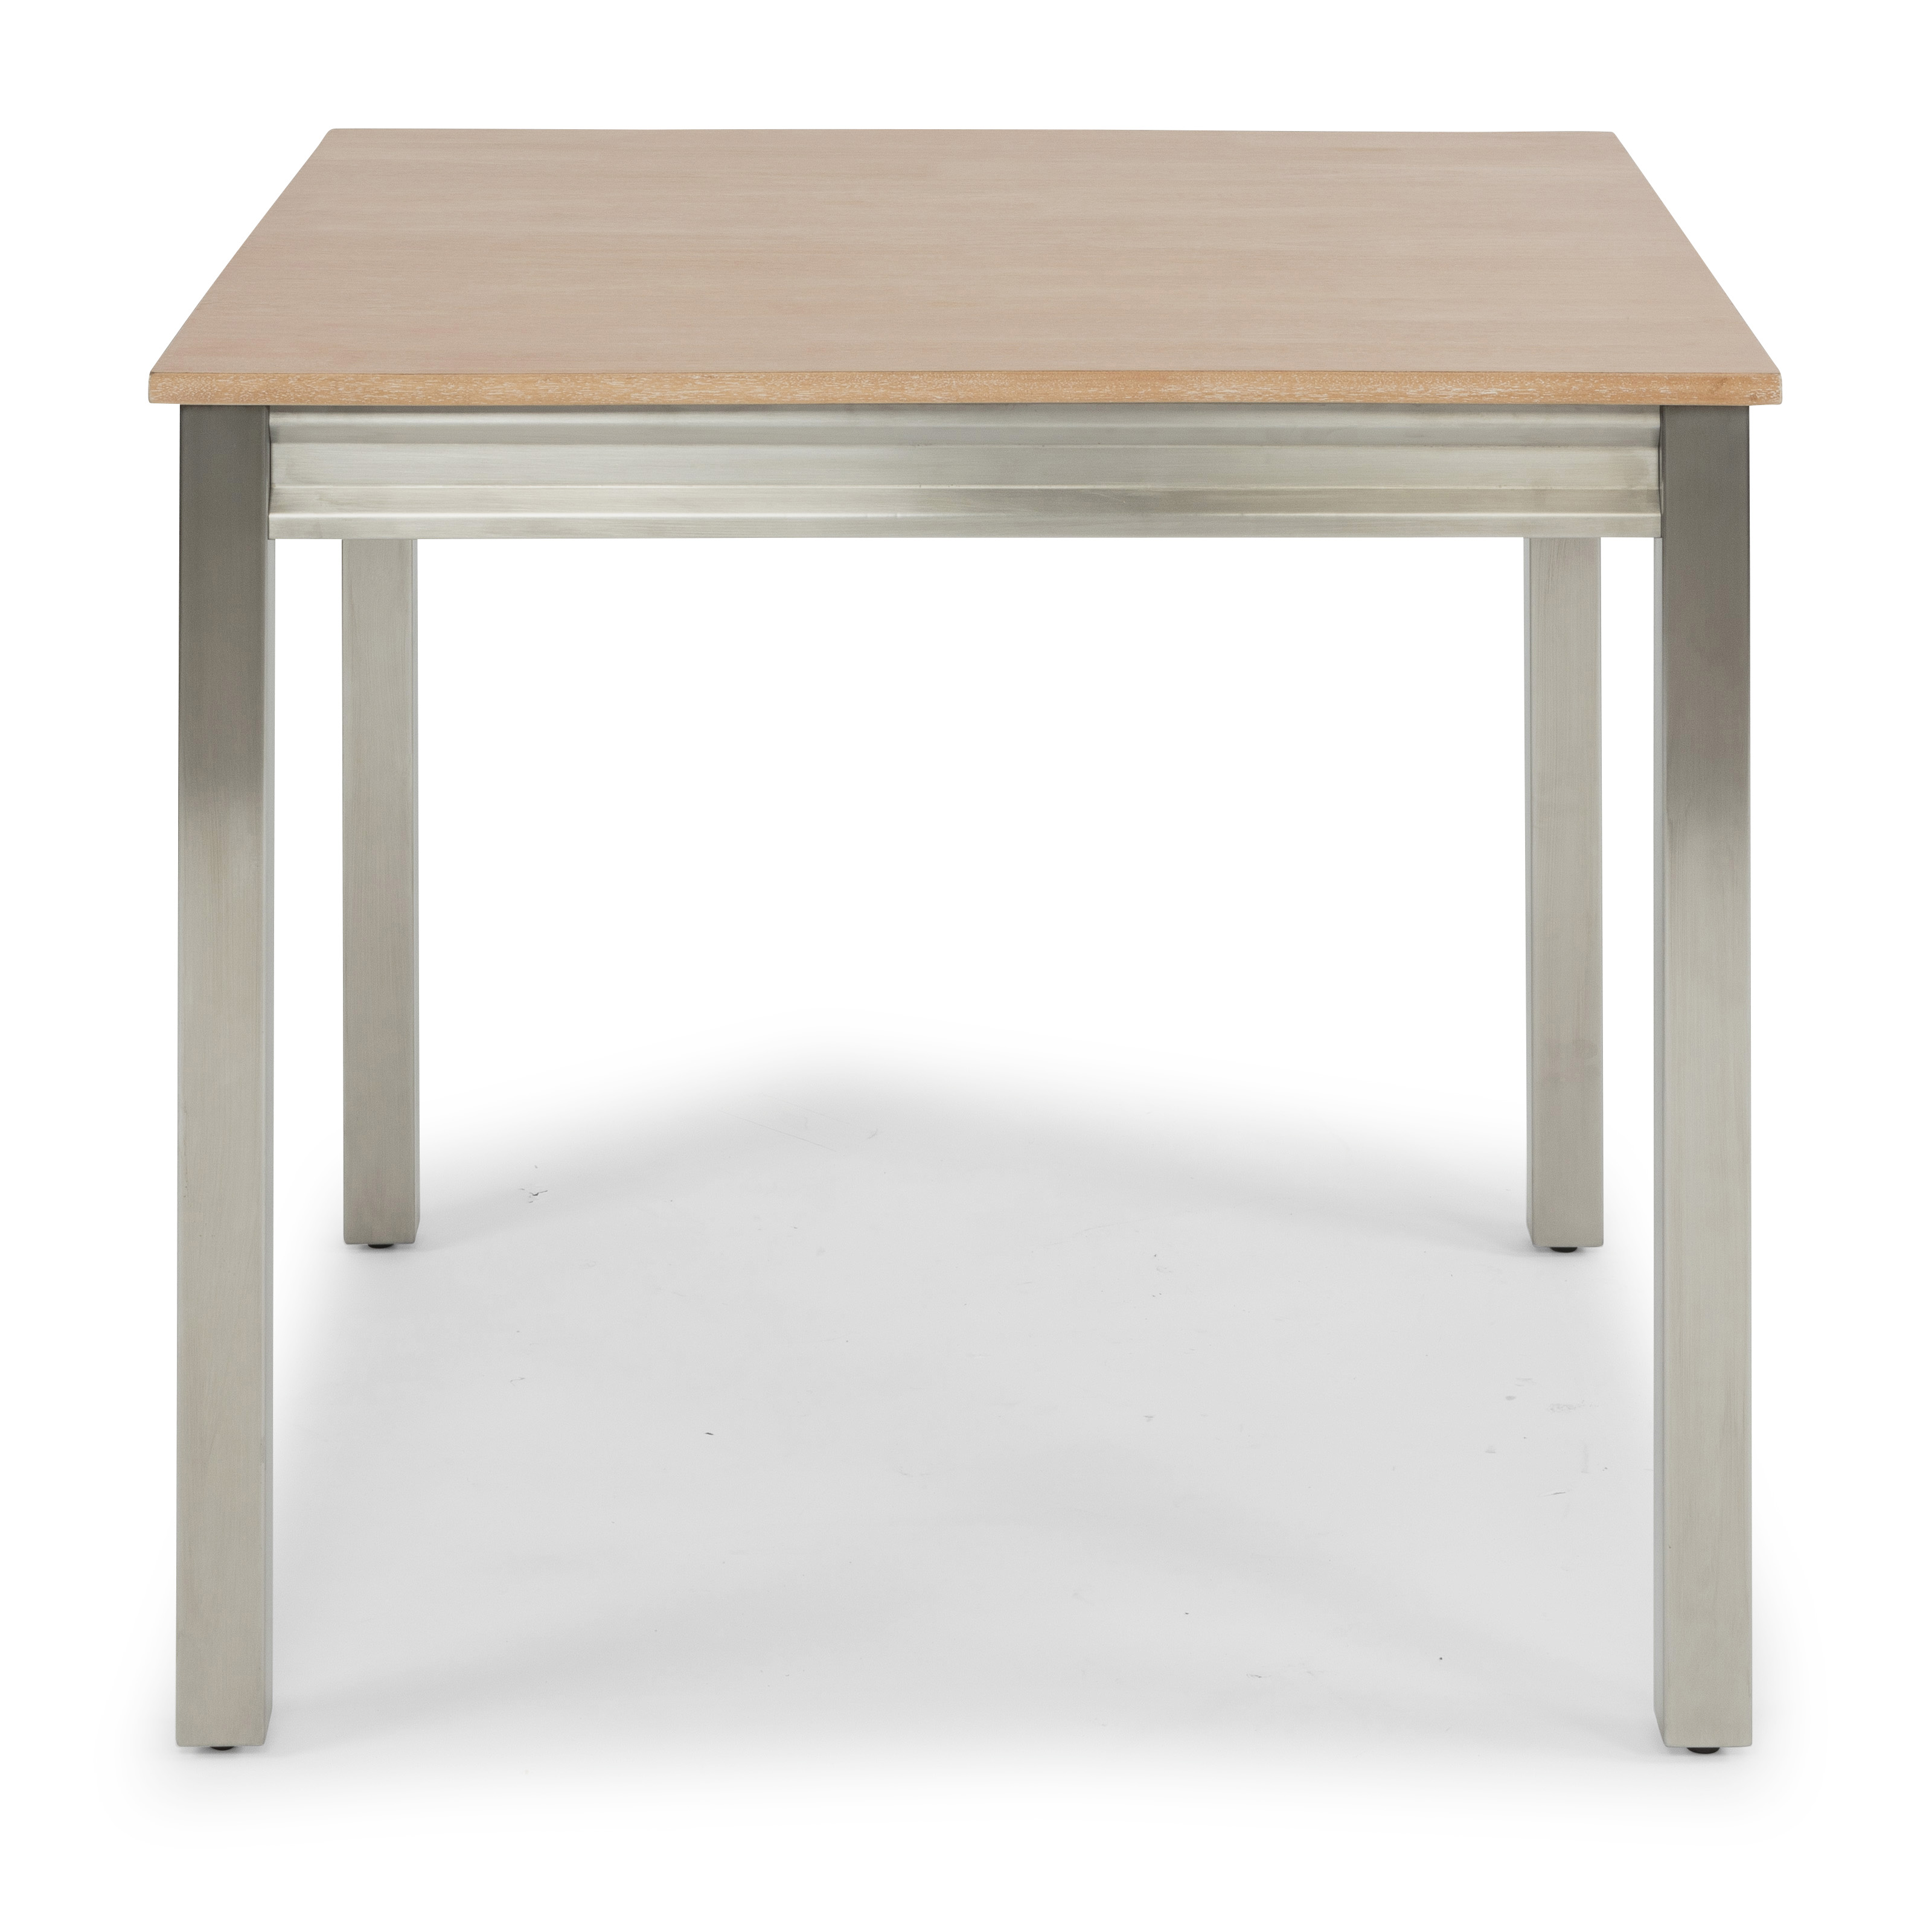 Sheffield Dining Table by homestyles at Godby Home Furnishings